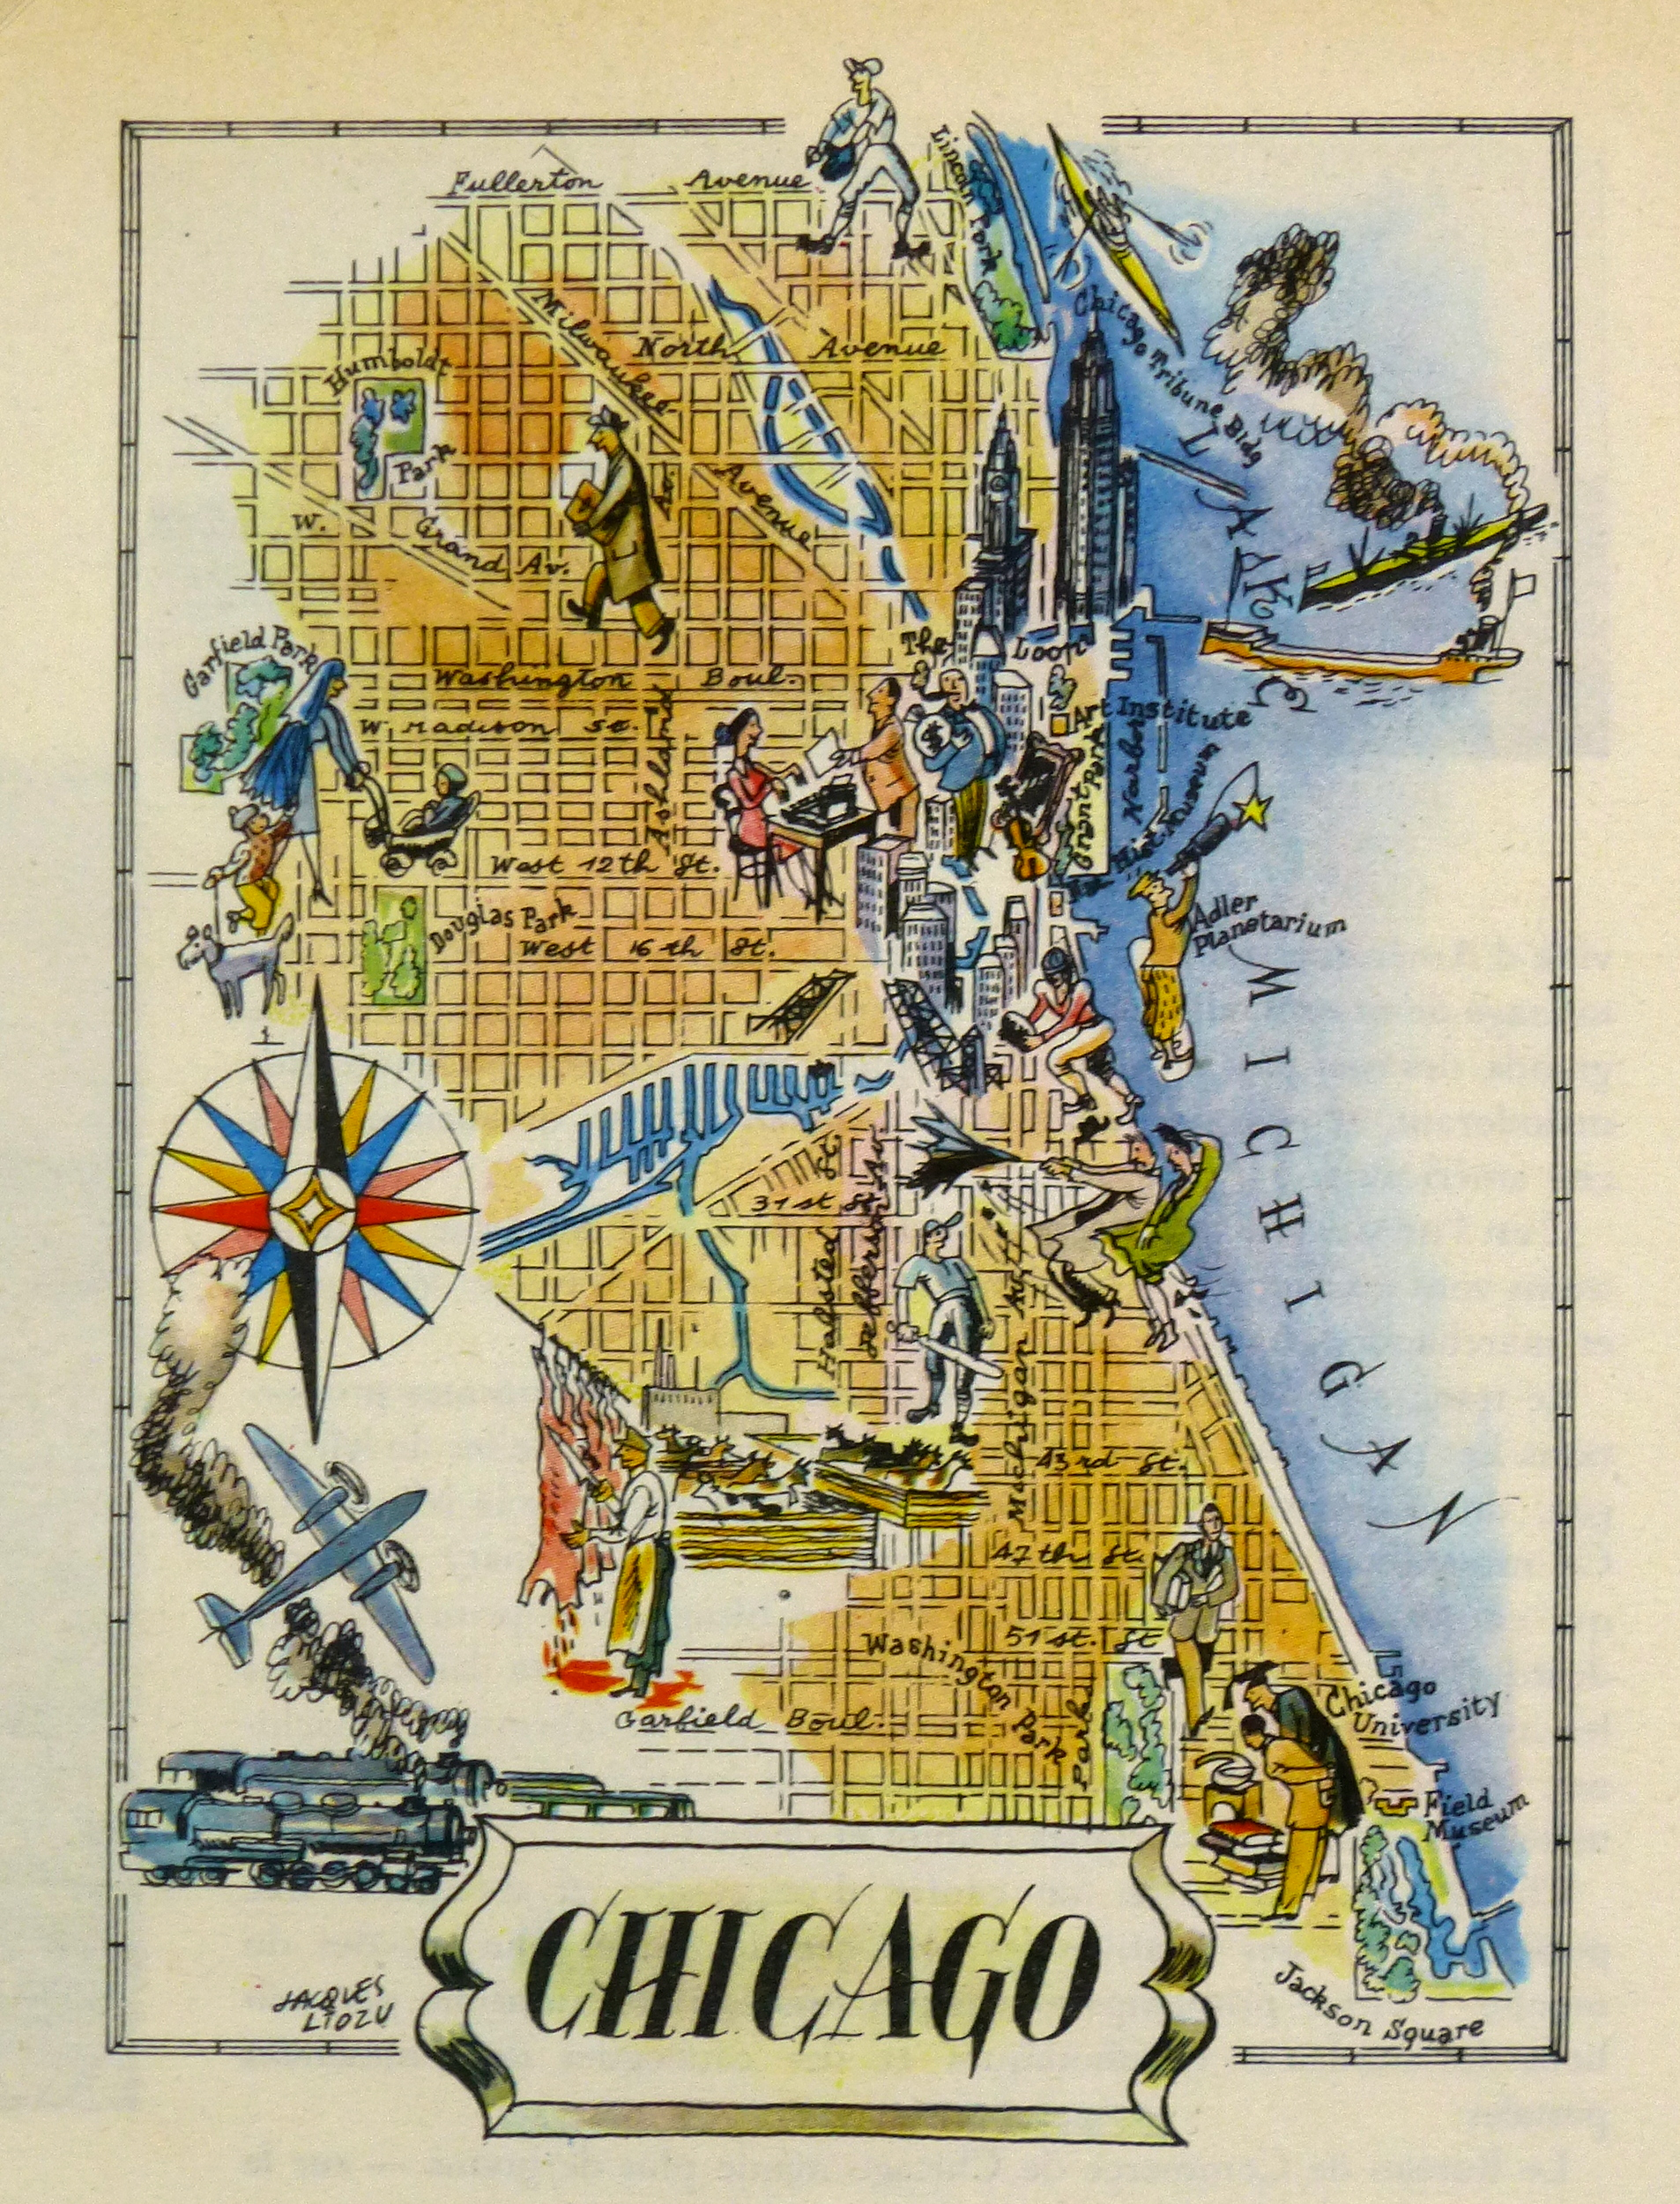 Chicago Pictorial Map, 1946